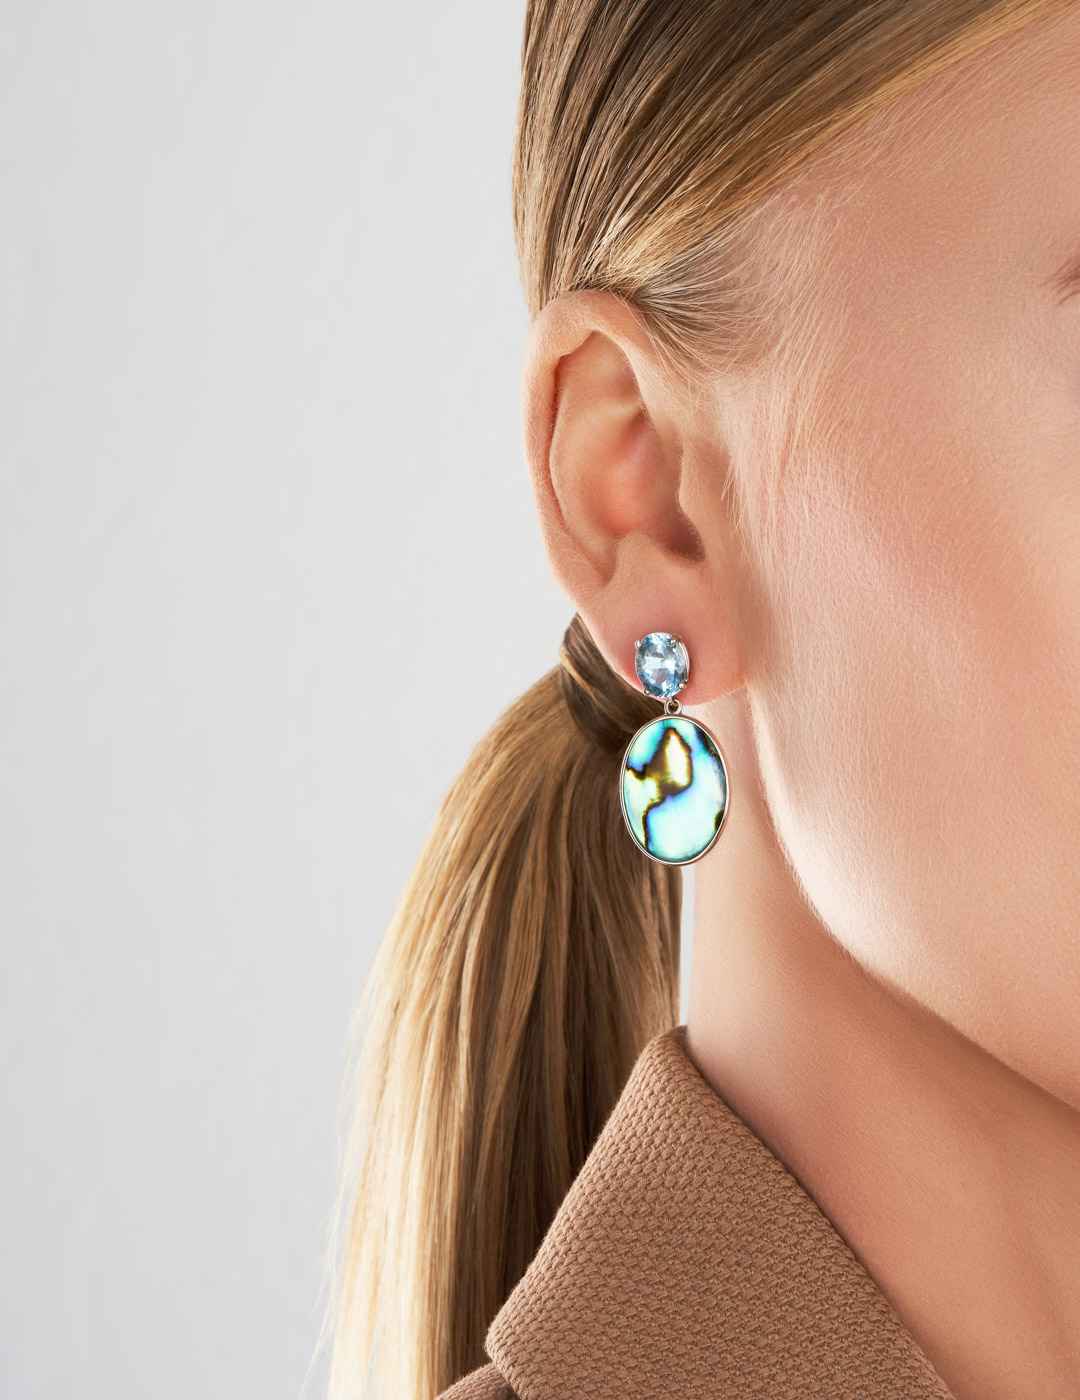 mish_products_earrings_Montreux-Abalone-ER-2